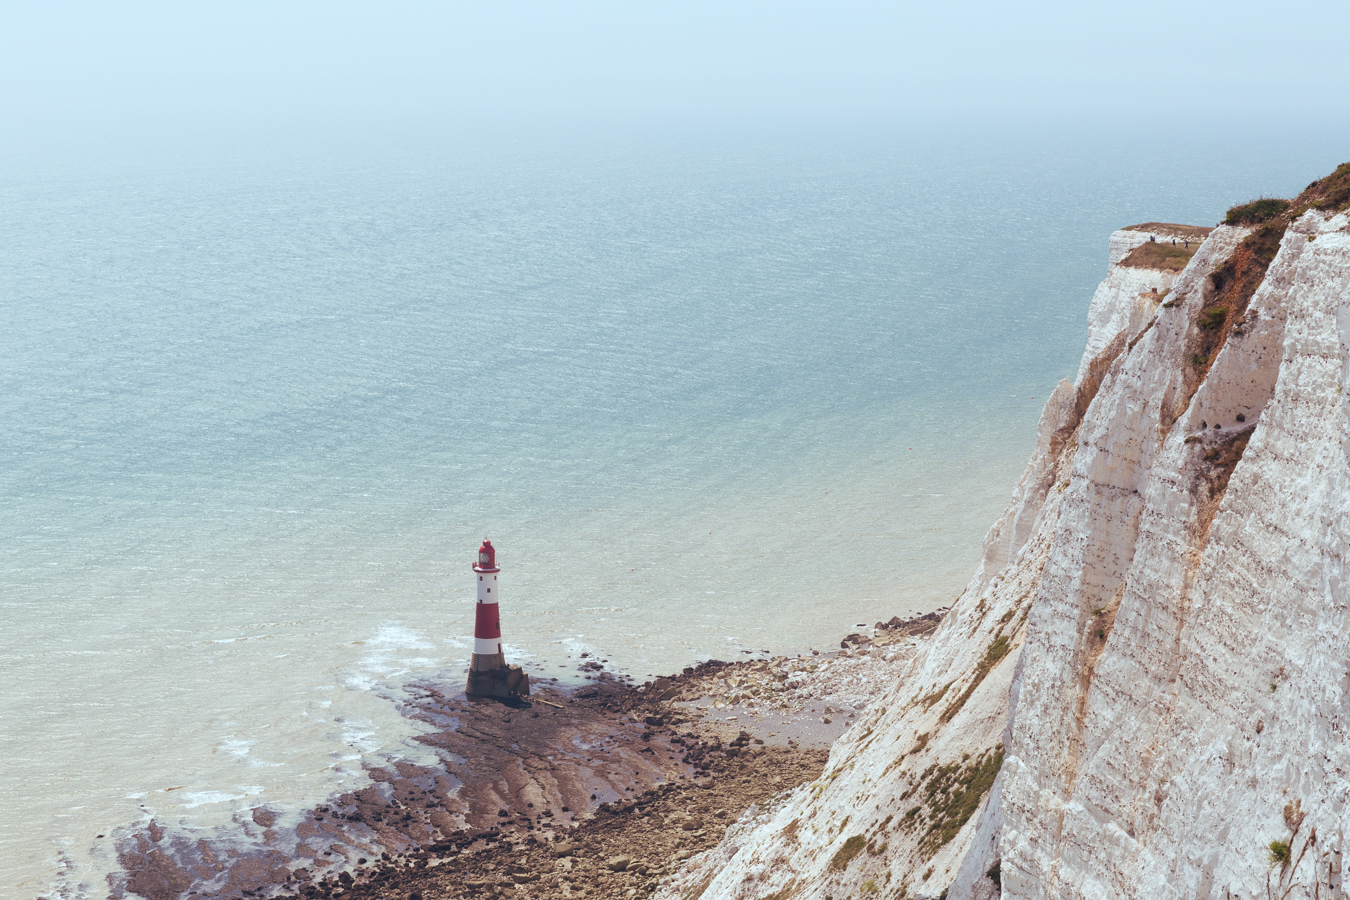 The infamous Beachy Head Lighthouse